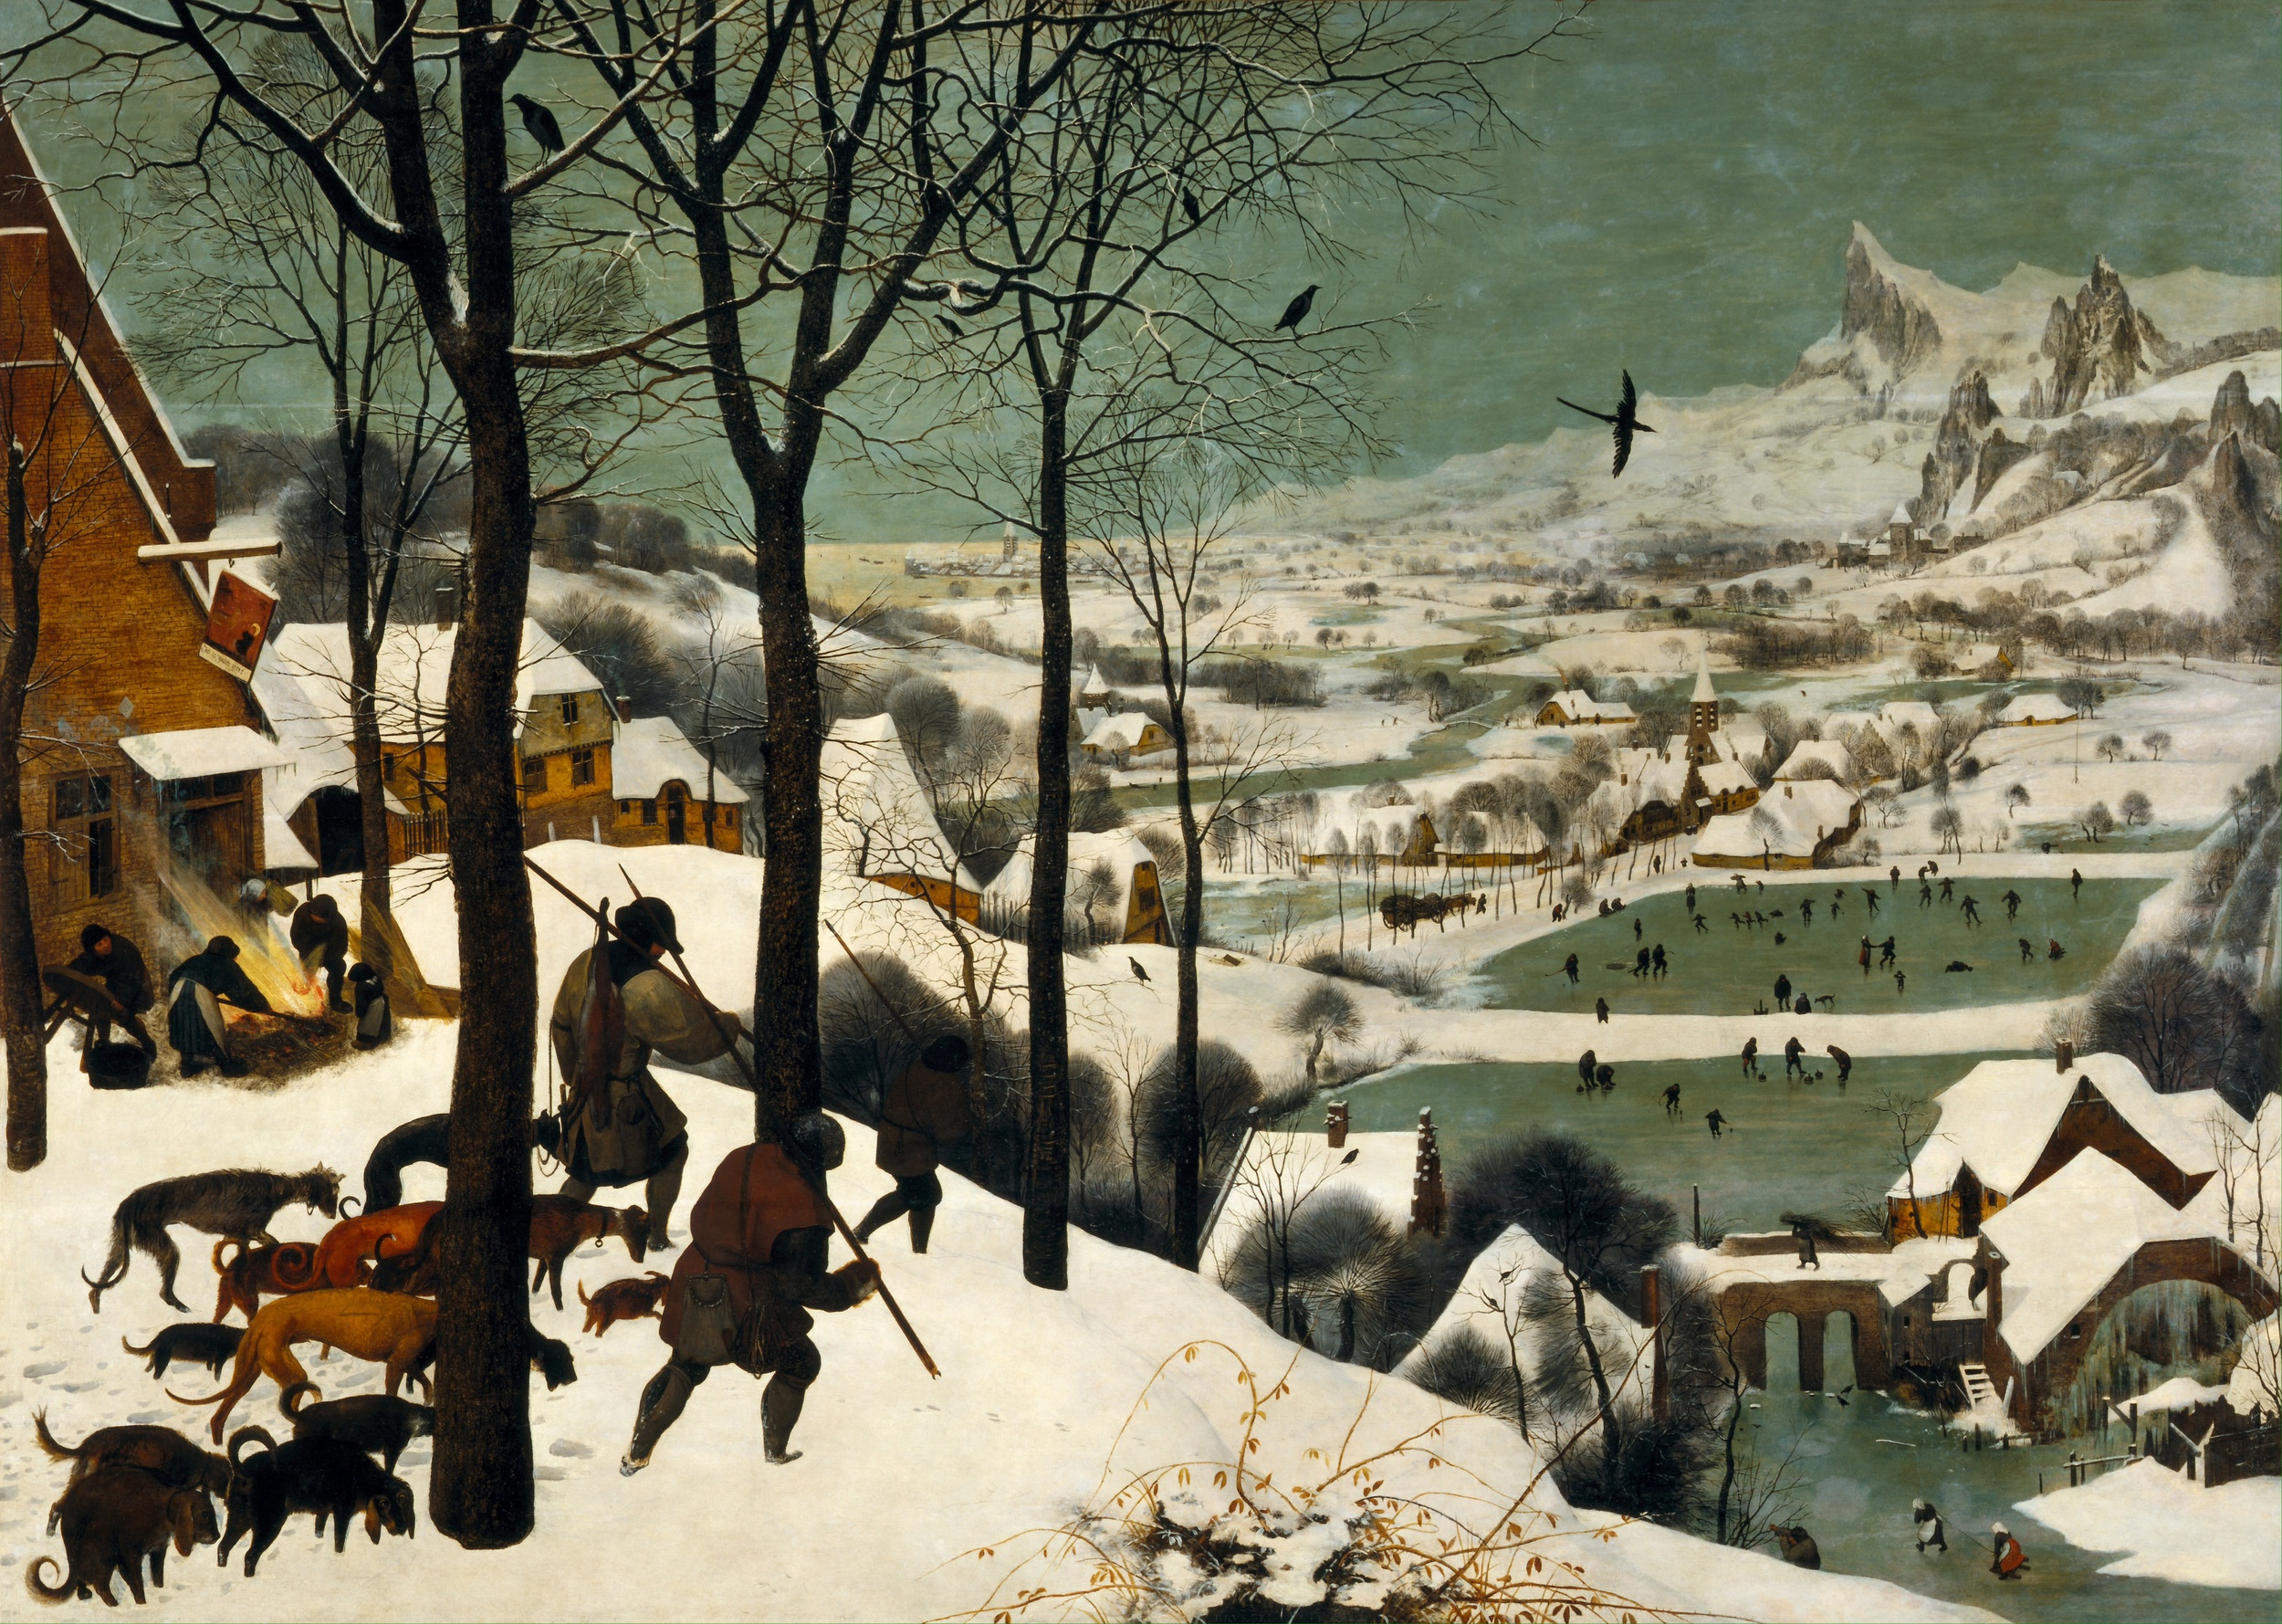 Hunters in the Snow by Bruegel